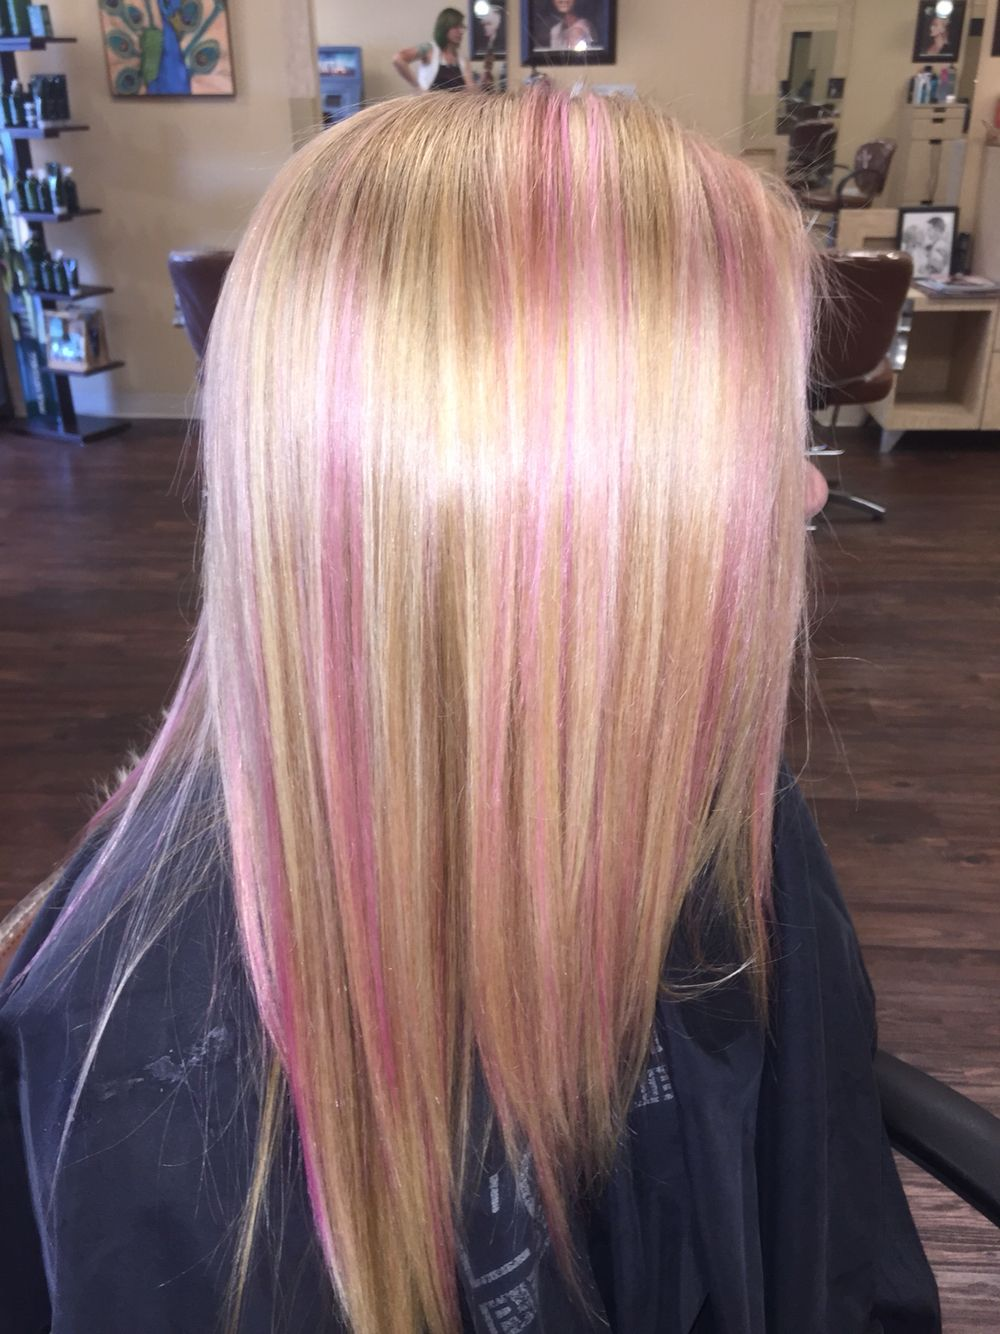 Pink Blonde Hair With Images Pink Blonde Hair Blonde Hair